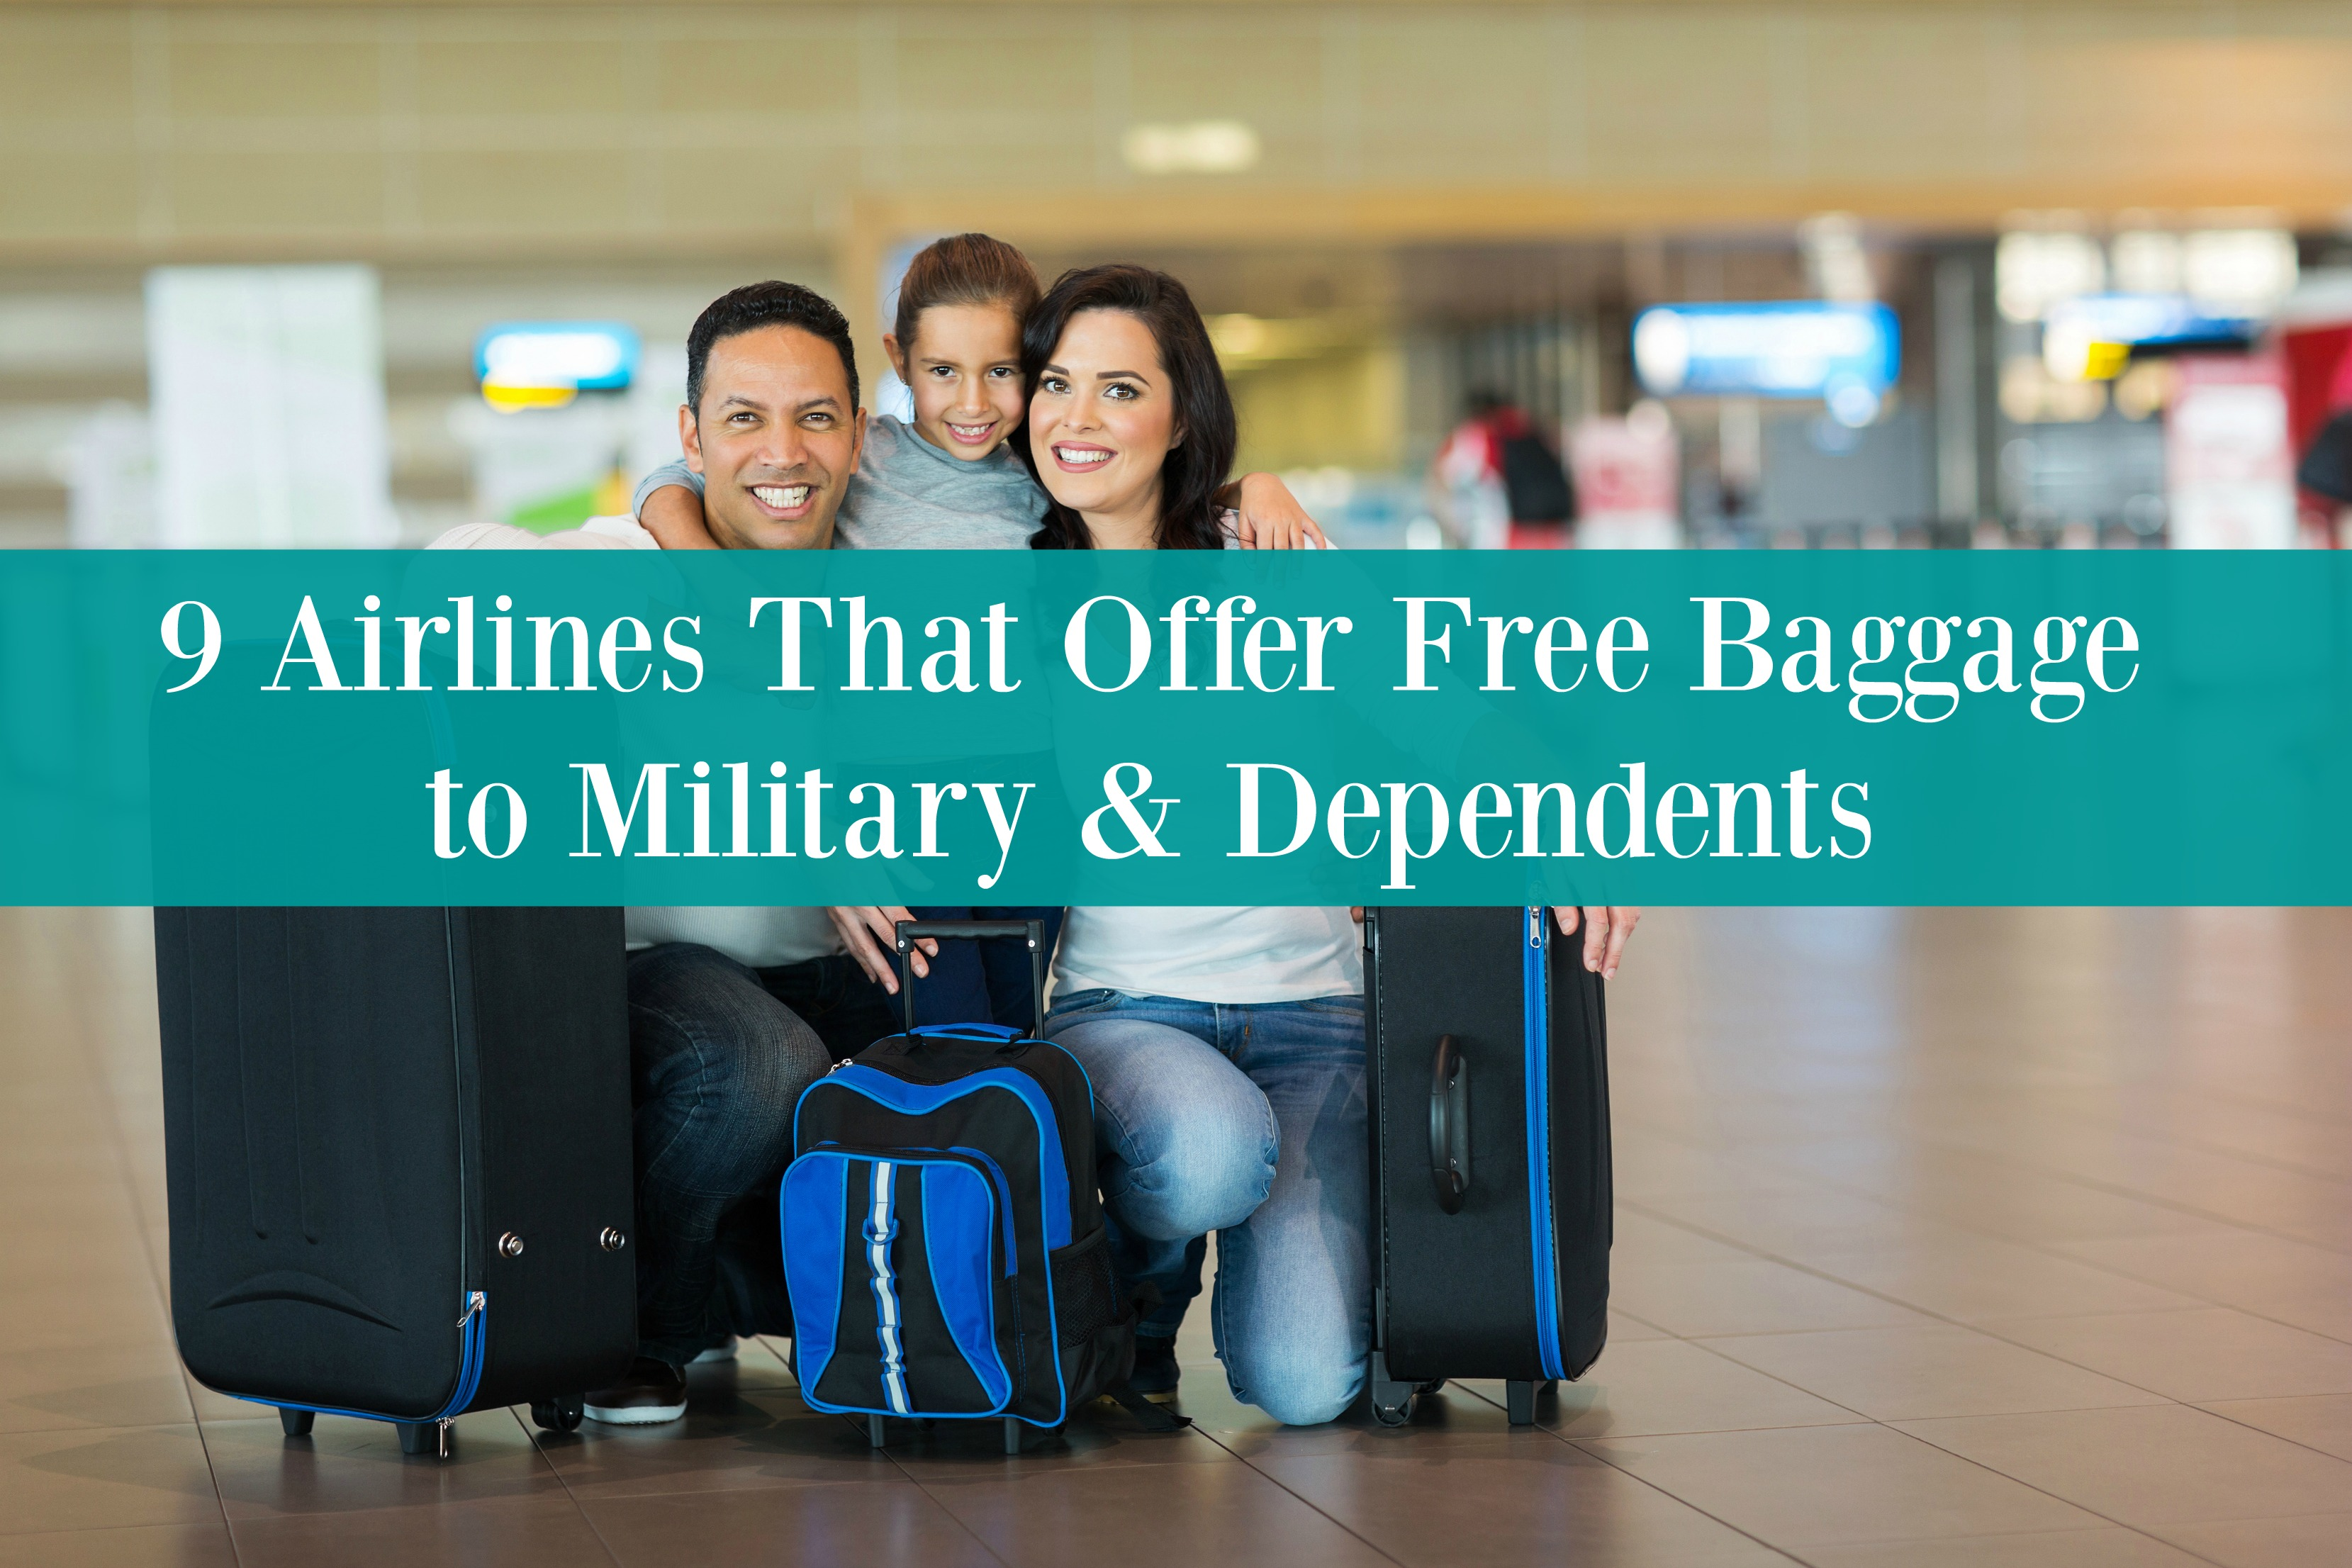 These Military Discounts Can Help You Find a Father's Day Gift. 6 months ago. Spirit now provides two free checked bags and a free carry-on (including the already free personal item) to active-duty military traveling on their airlines.